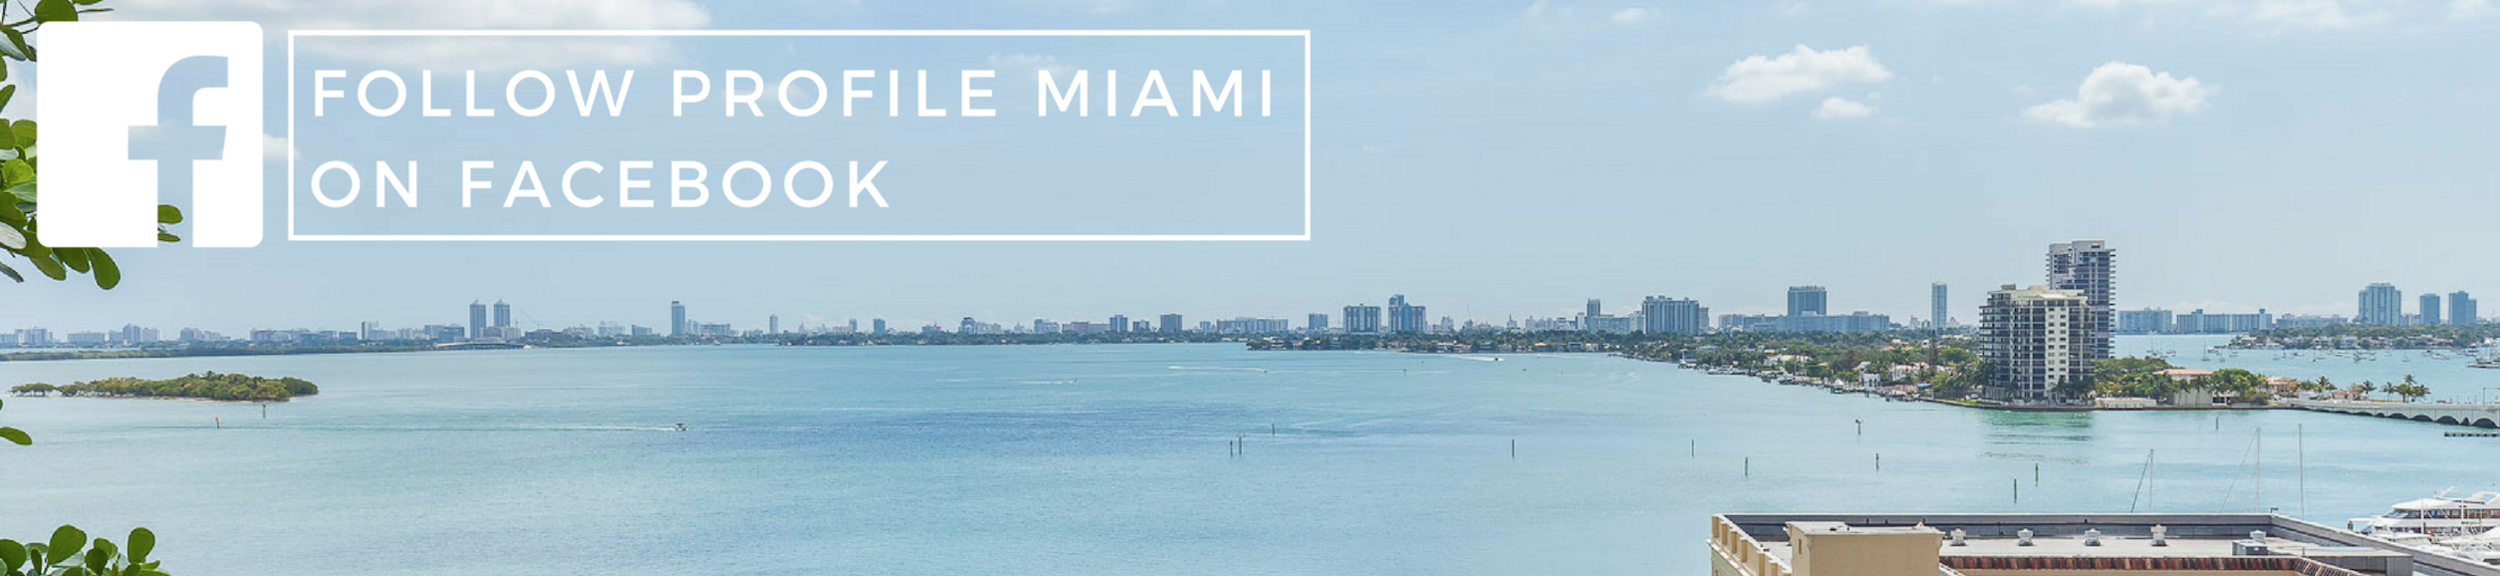 Follow+PROFILE+Miami+Real+Estate+on+Facebook (1).png